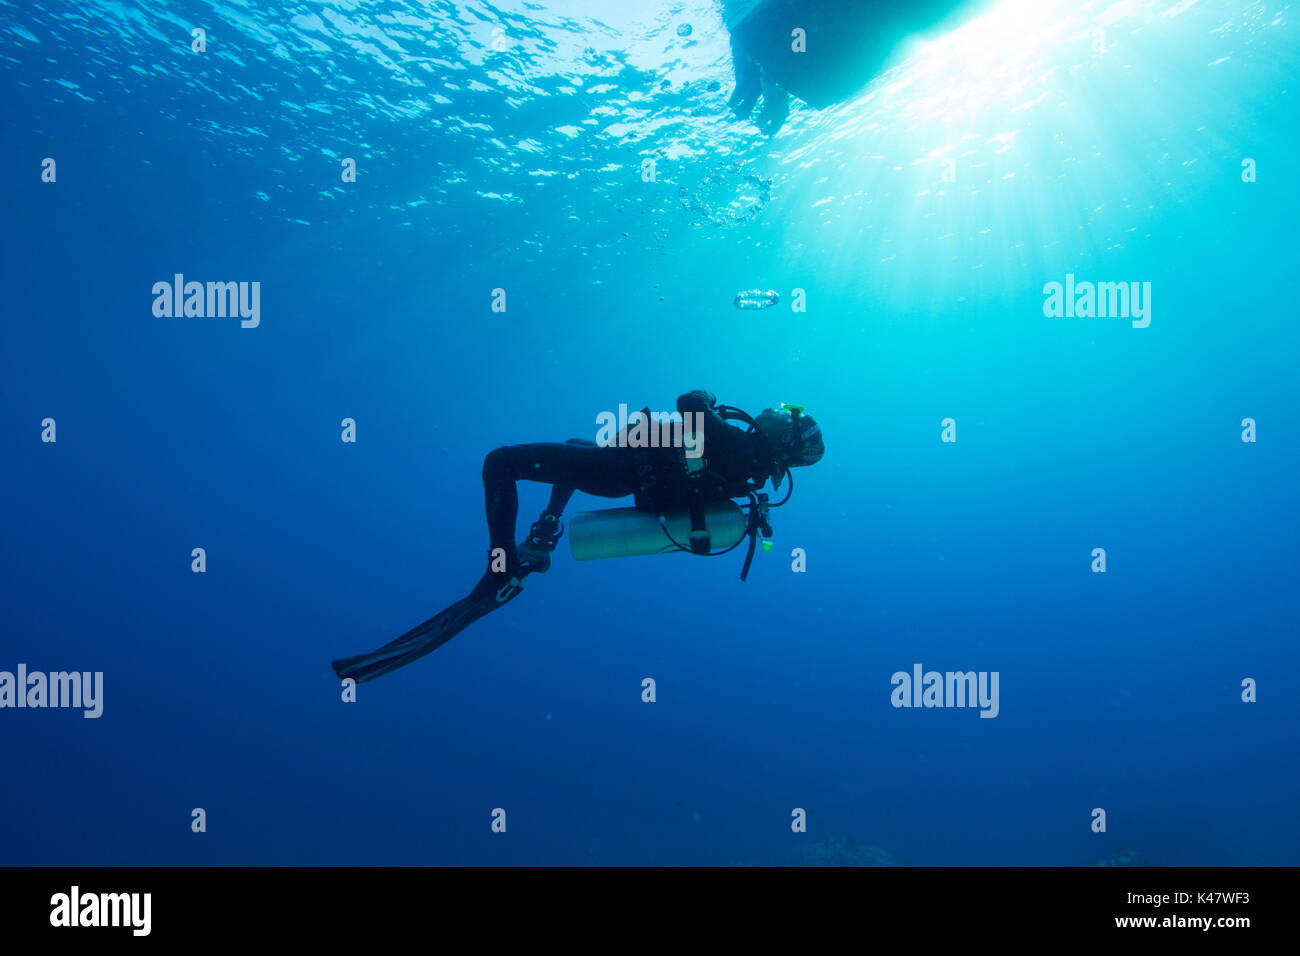 bubble the of swimmer toroidal ring rings stock photo vortex pool generating also at bottom called a swimming